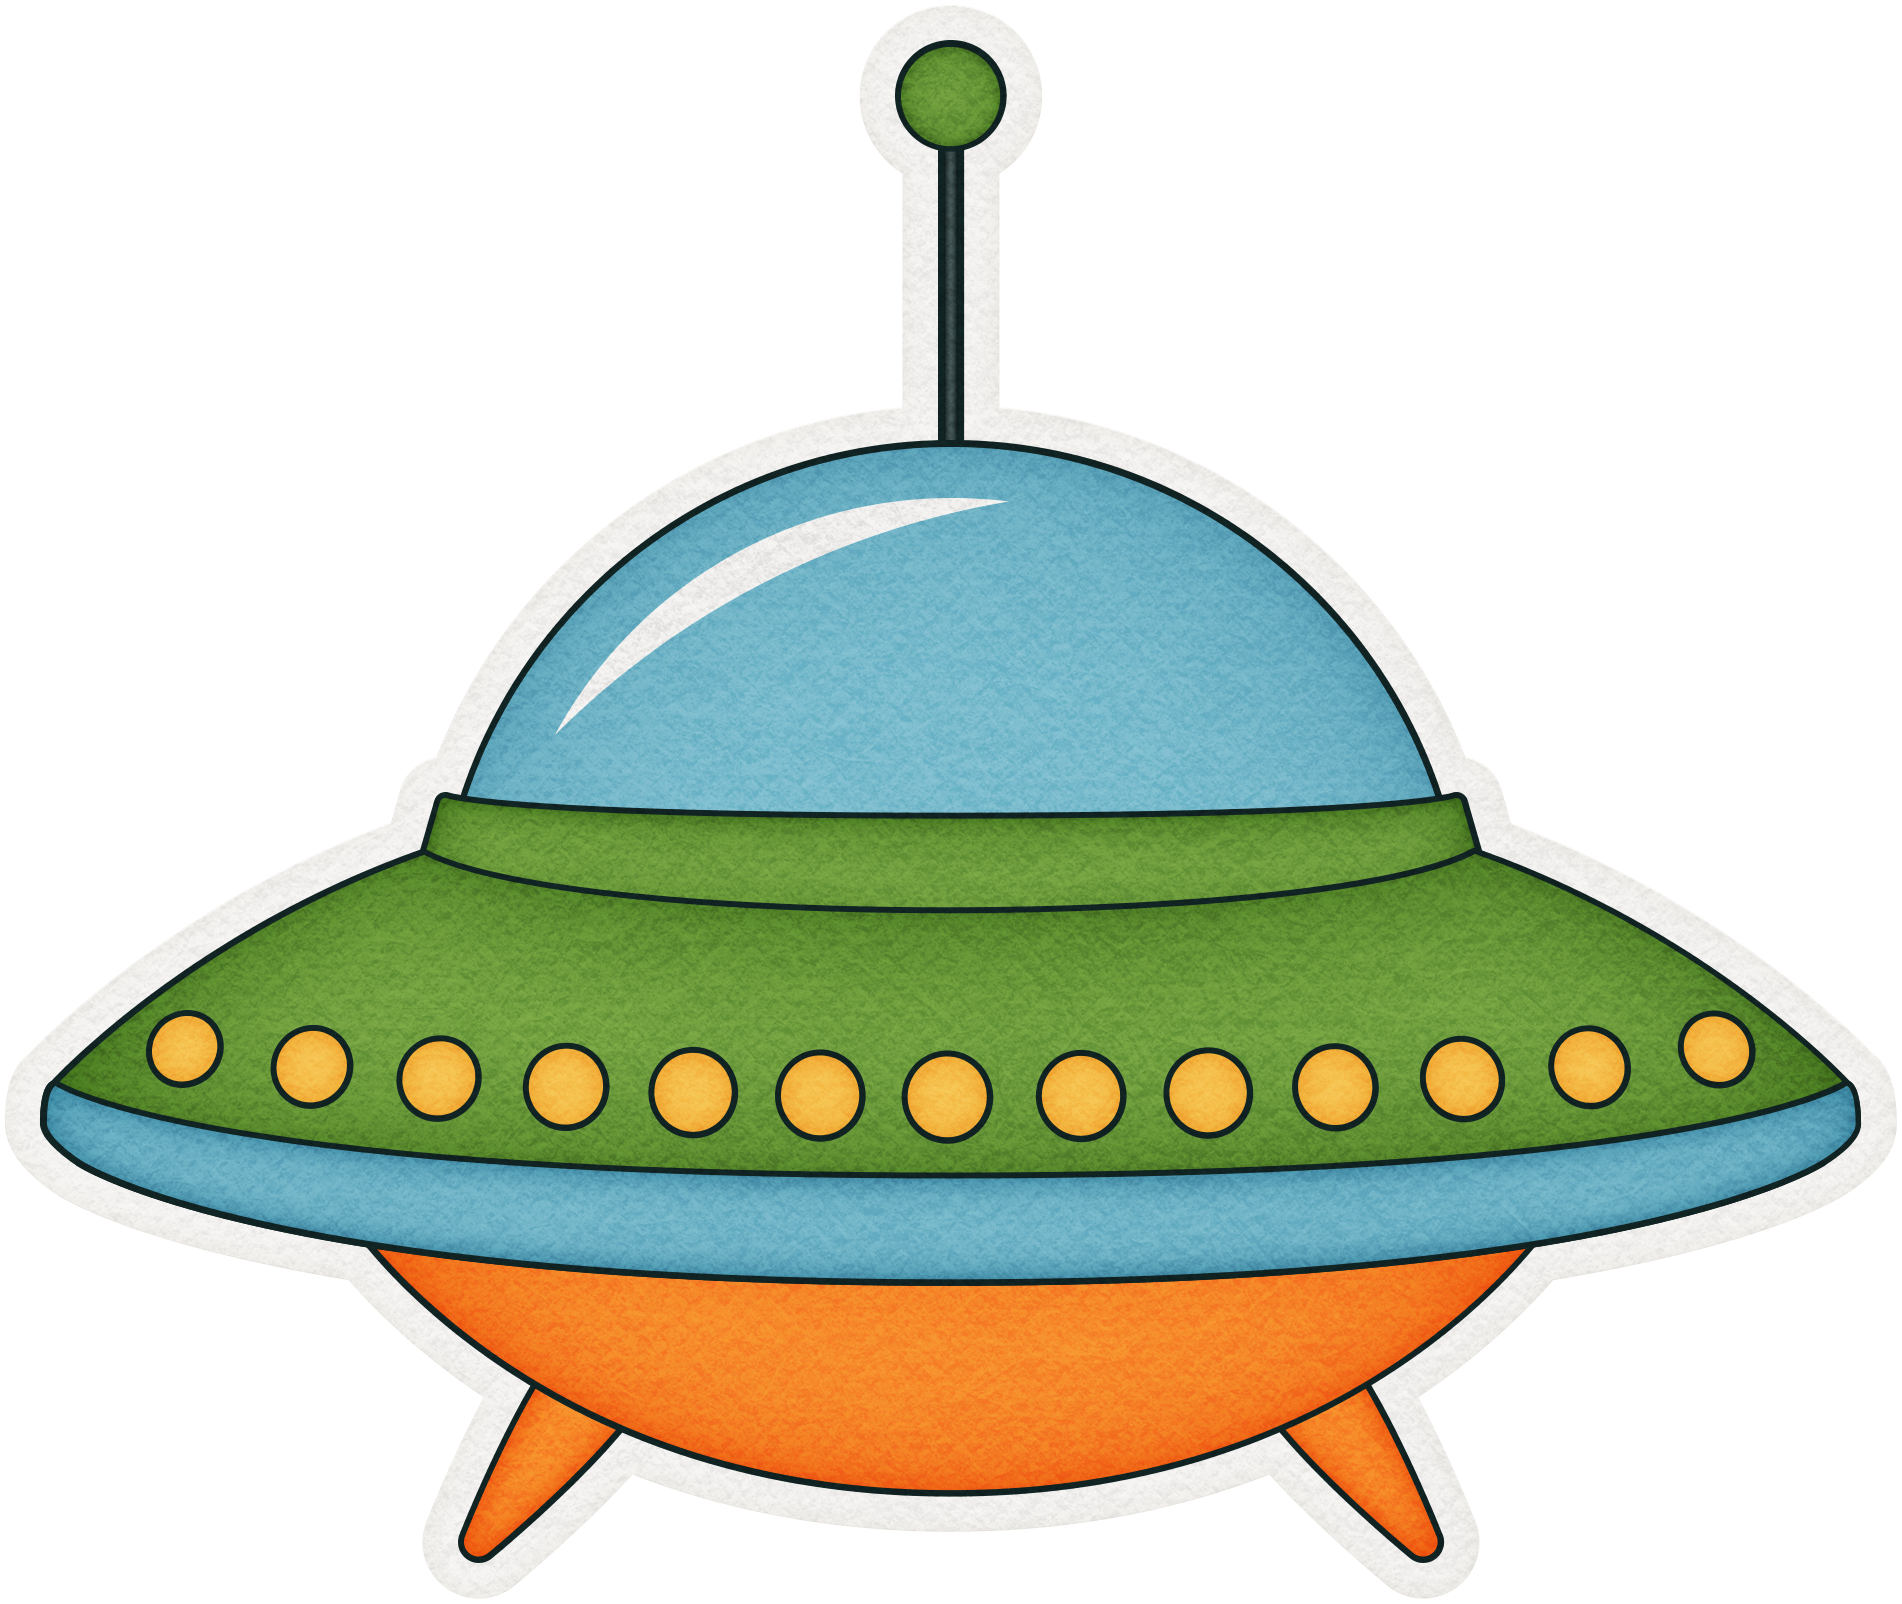 Cartoon ufo png. Unidentified flying object clip